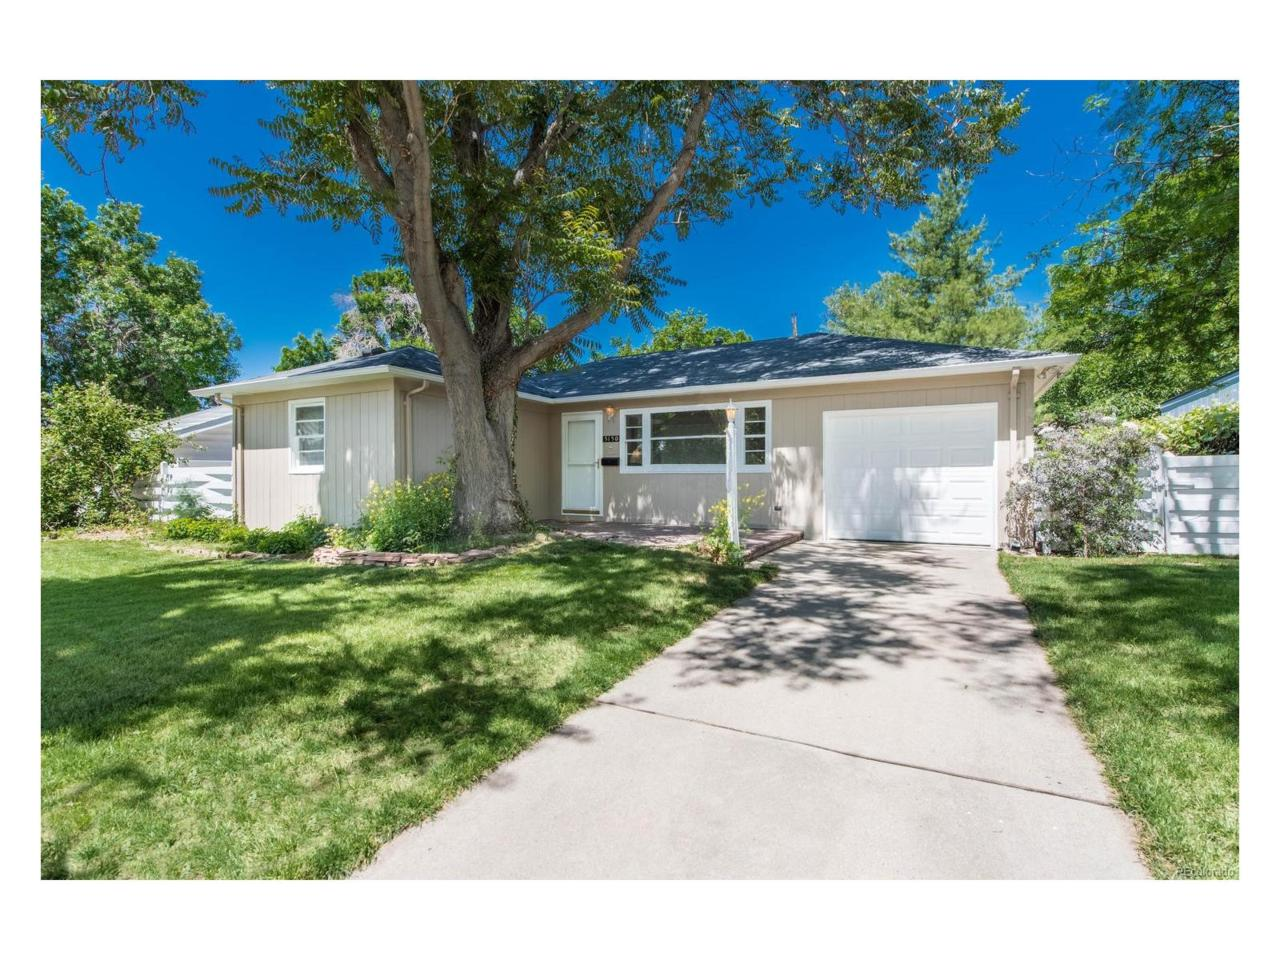 5150 S Pennsylvania Street, Littleton, CO 80121 (MLS #3628336) :: 8z Real Estate